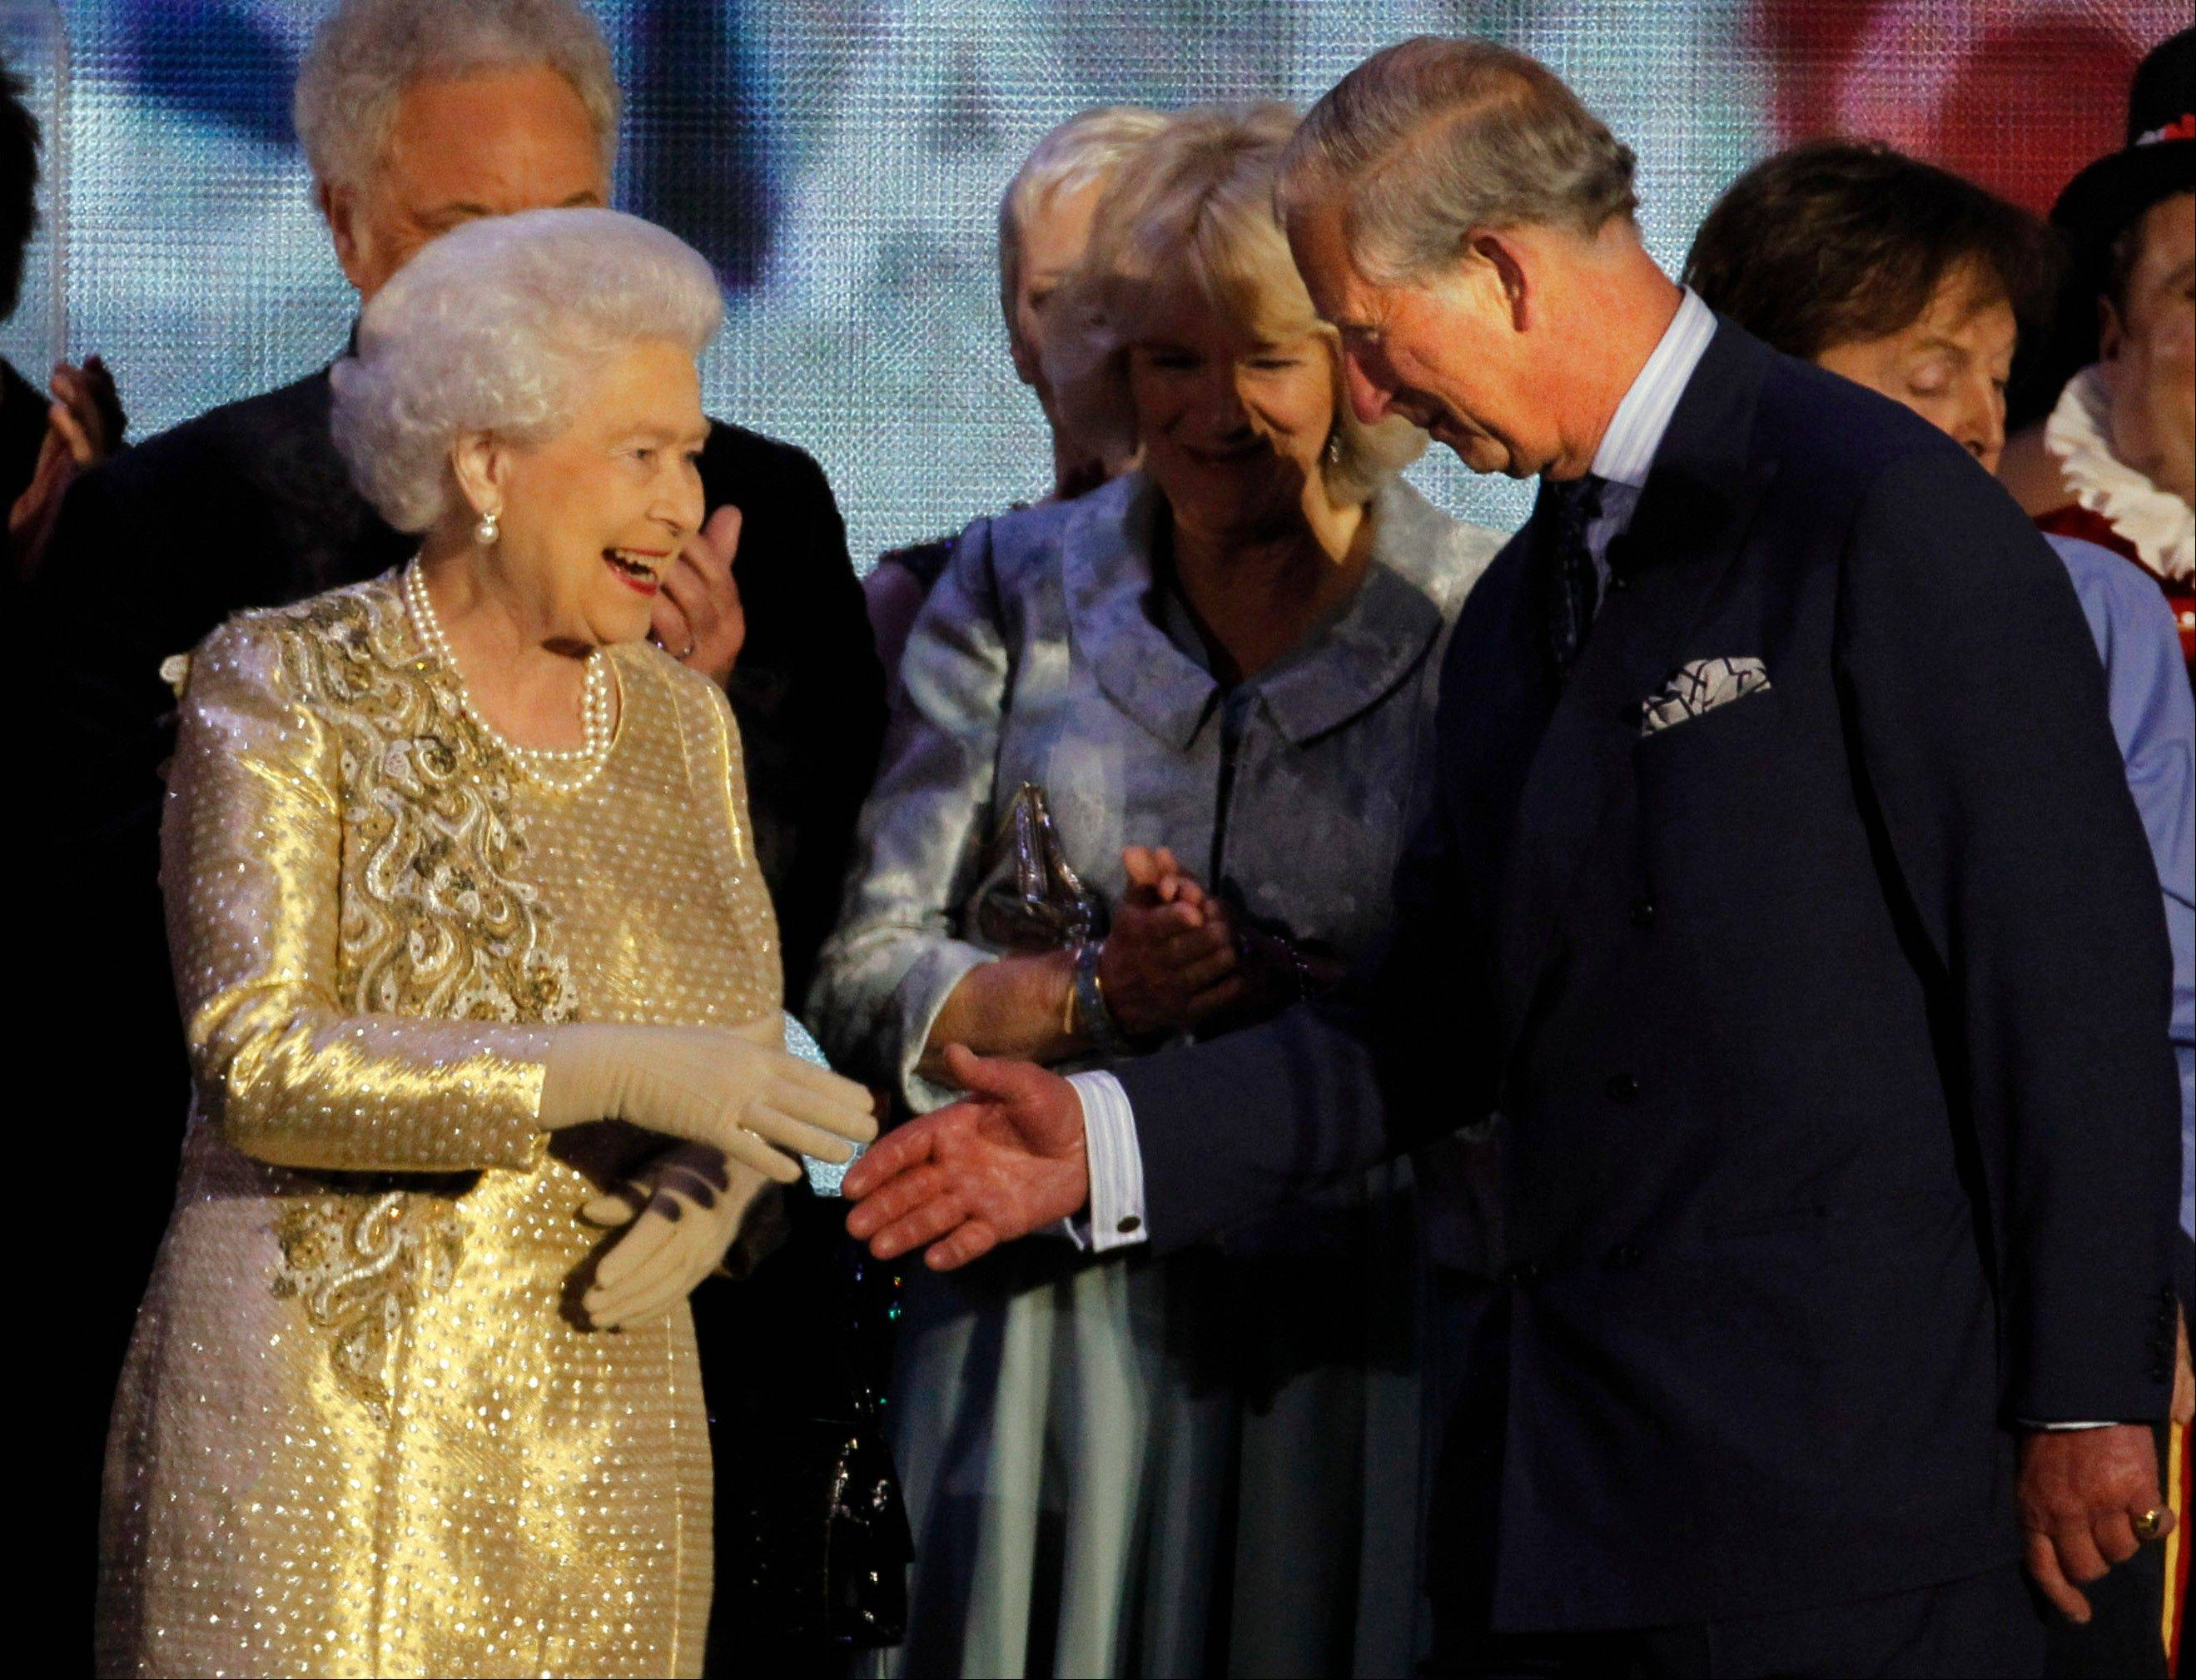 Britain's Queen Elizabeth II shakes the hand of her son Prince Charles at the end of the Queen's Jubilee Concert in front of Buckingham Palace, London, Monday, June 4, 2012. The concert is a part of four days of celebrations to mark the 60-year reign of Britain's Queen Elizabeth II.